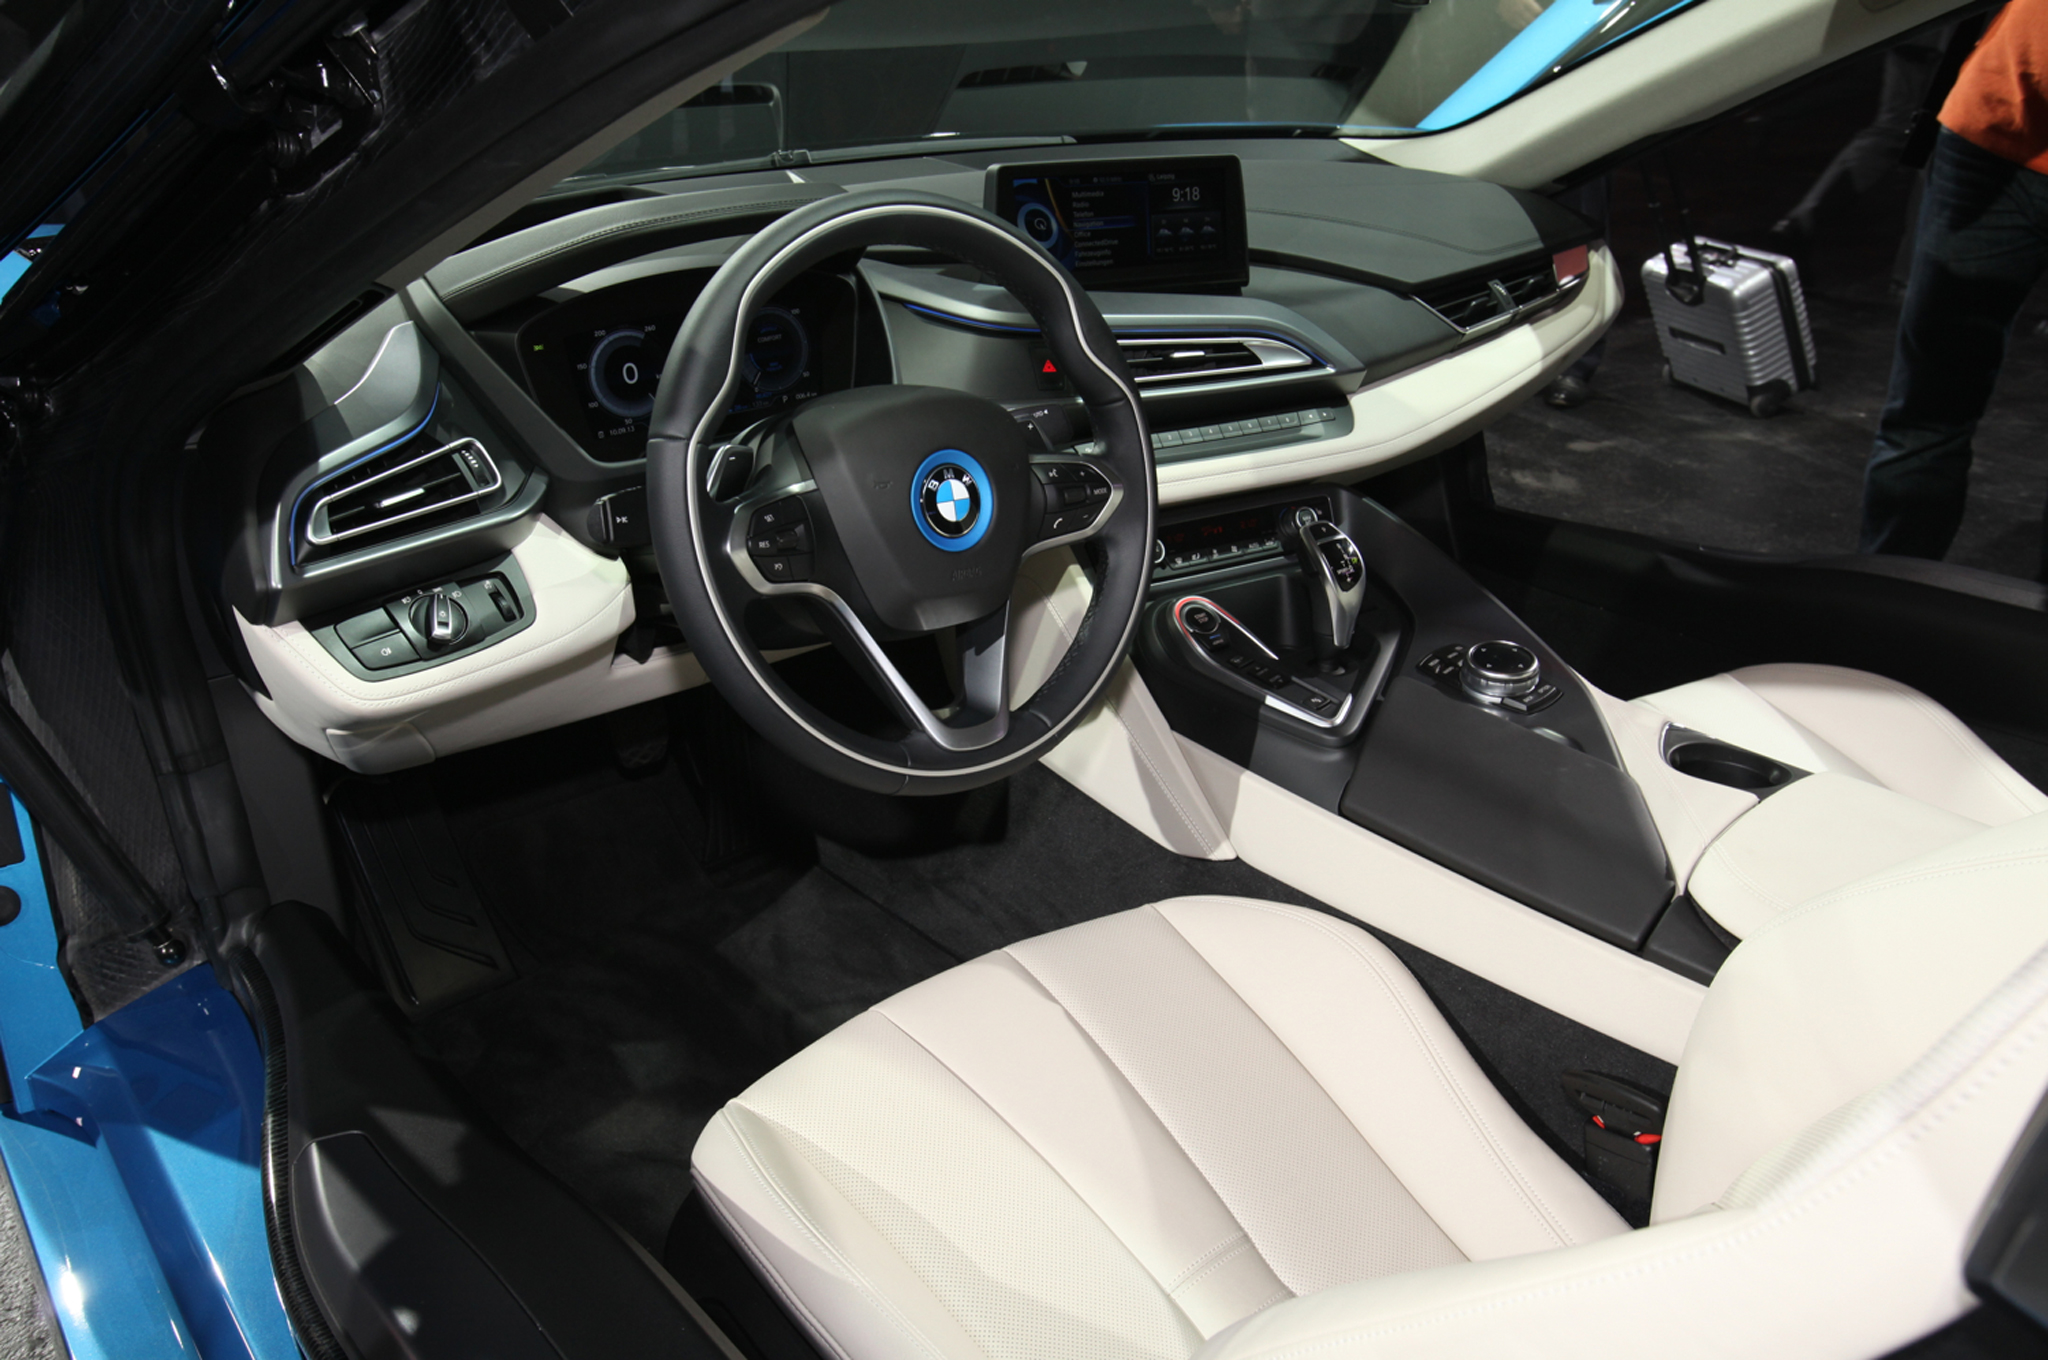 2014 BMW i8 plug in hybrid interior seats